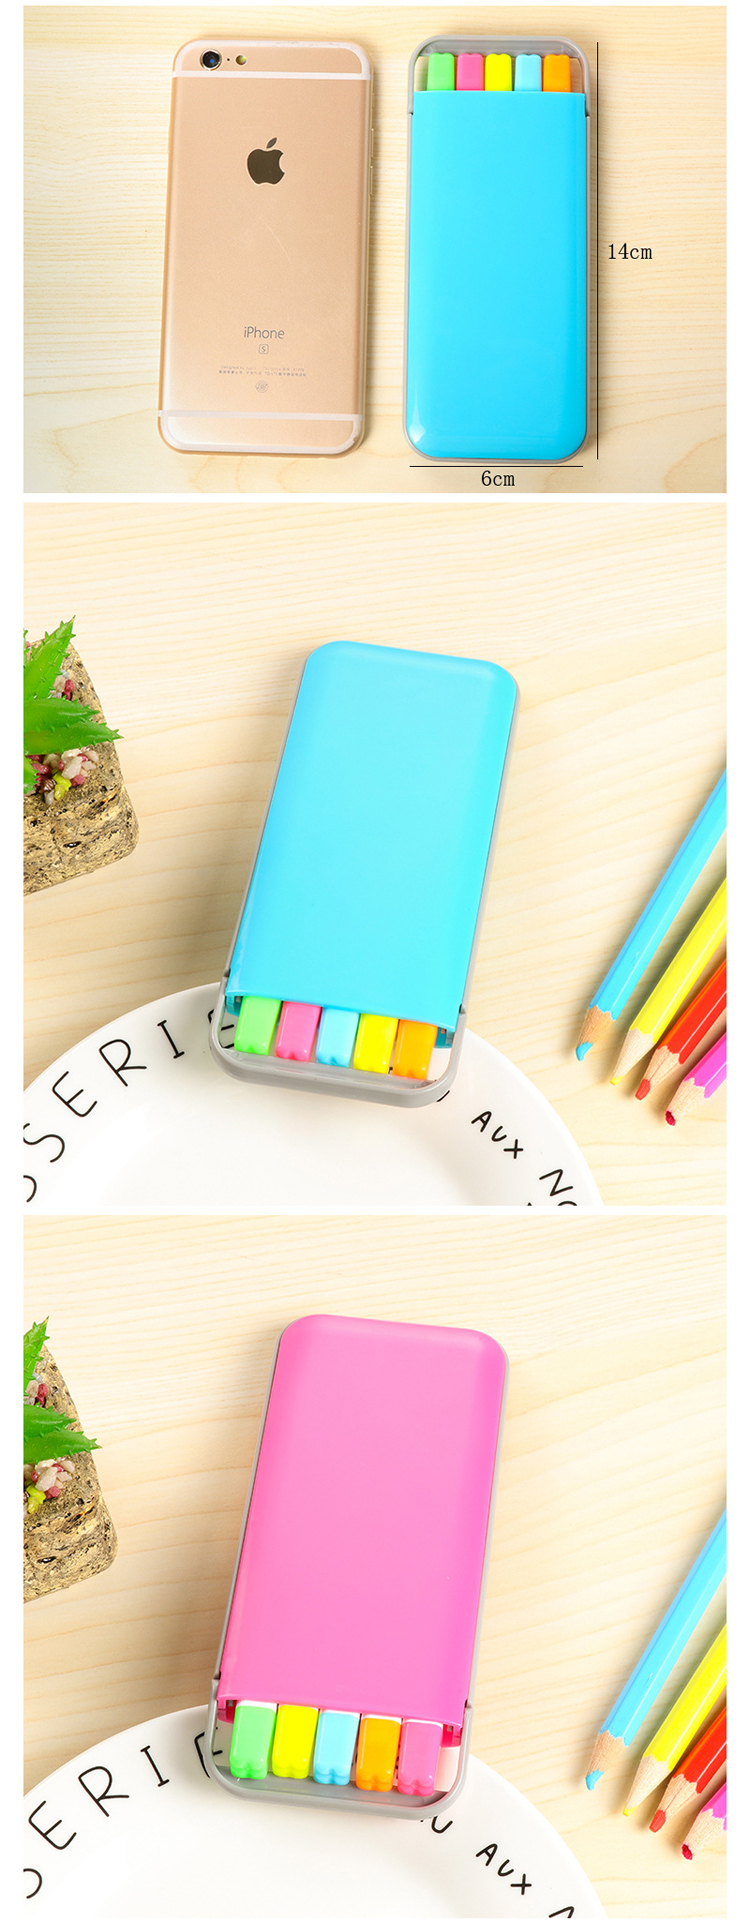 5 pcs/box Kawaii Mini Candy Colors Highlighter Pens Set Cute Kids Painting Drawing Highlighter Art Marker Pen Writing Stationery 7